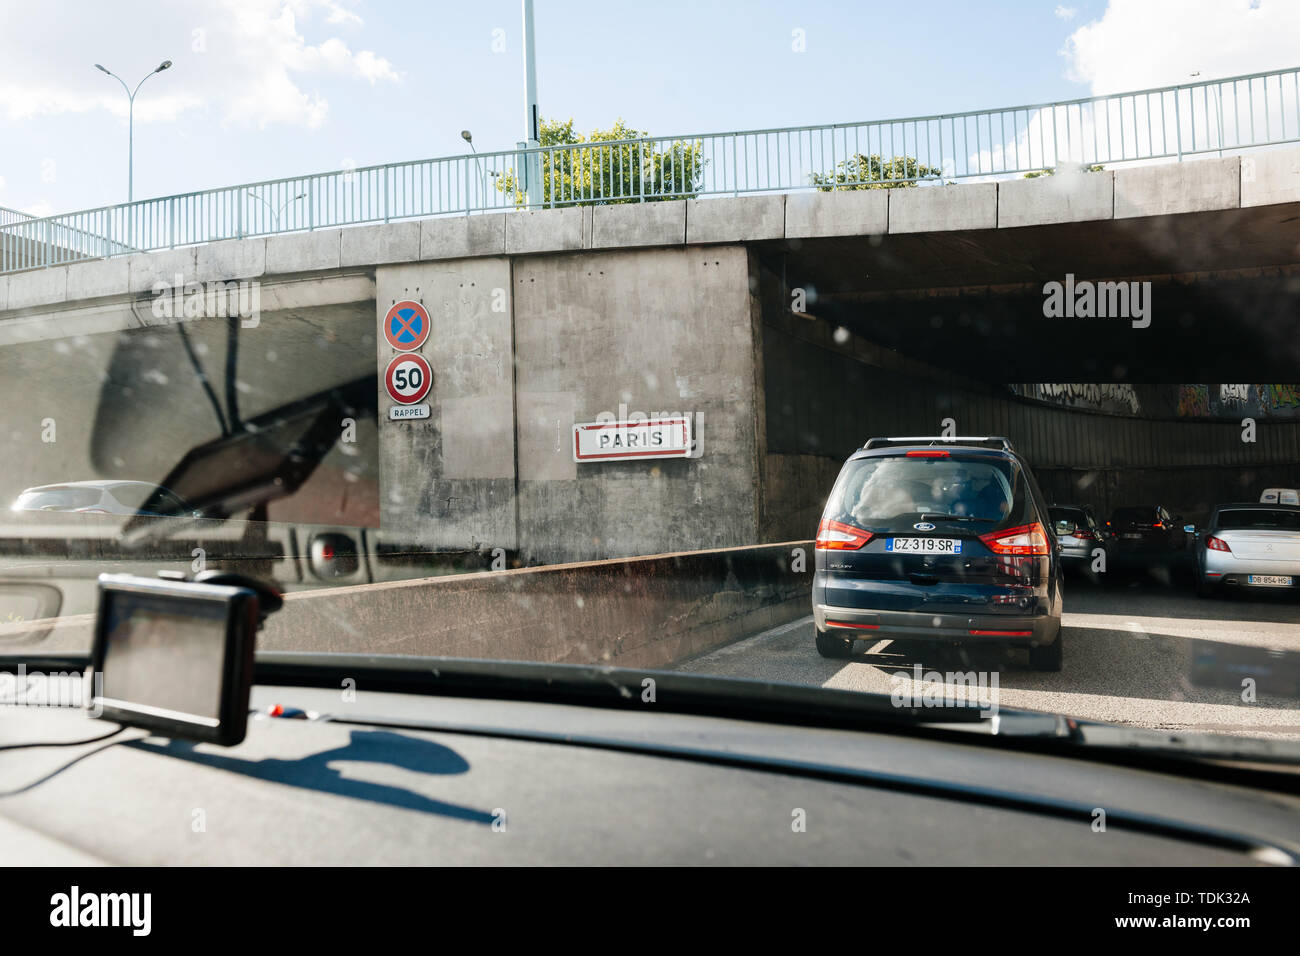 Paris, France - May 14, 2014: Driver POV point of view personal perspective at the traffic jam front driving cars entering Paris peripherique ring road highway - Stock Image